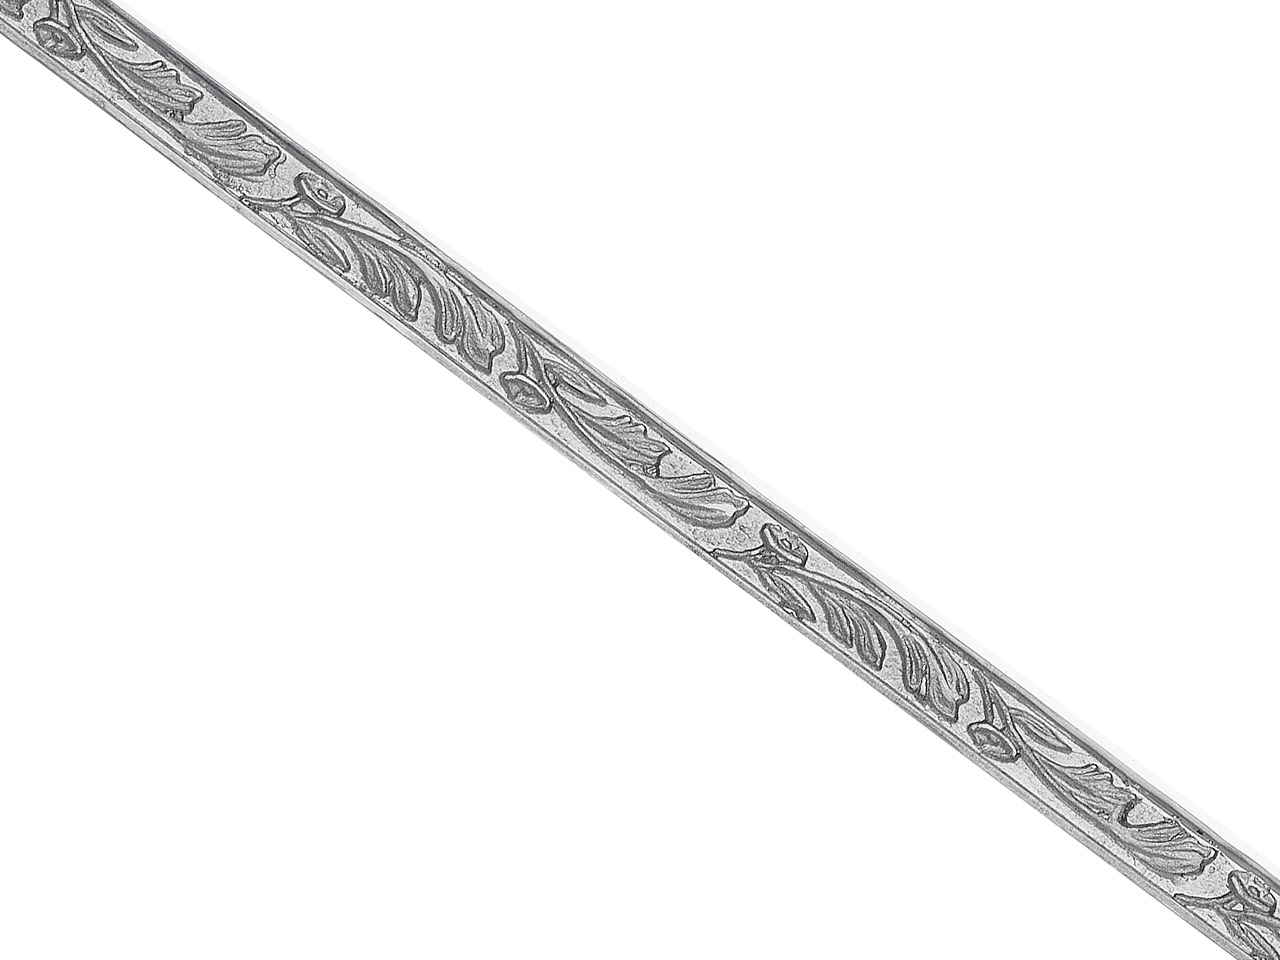 Sterling Silver Pattern Wire 3420  32g/mtr Half Hard, 0.75mm X 4.2mm